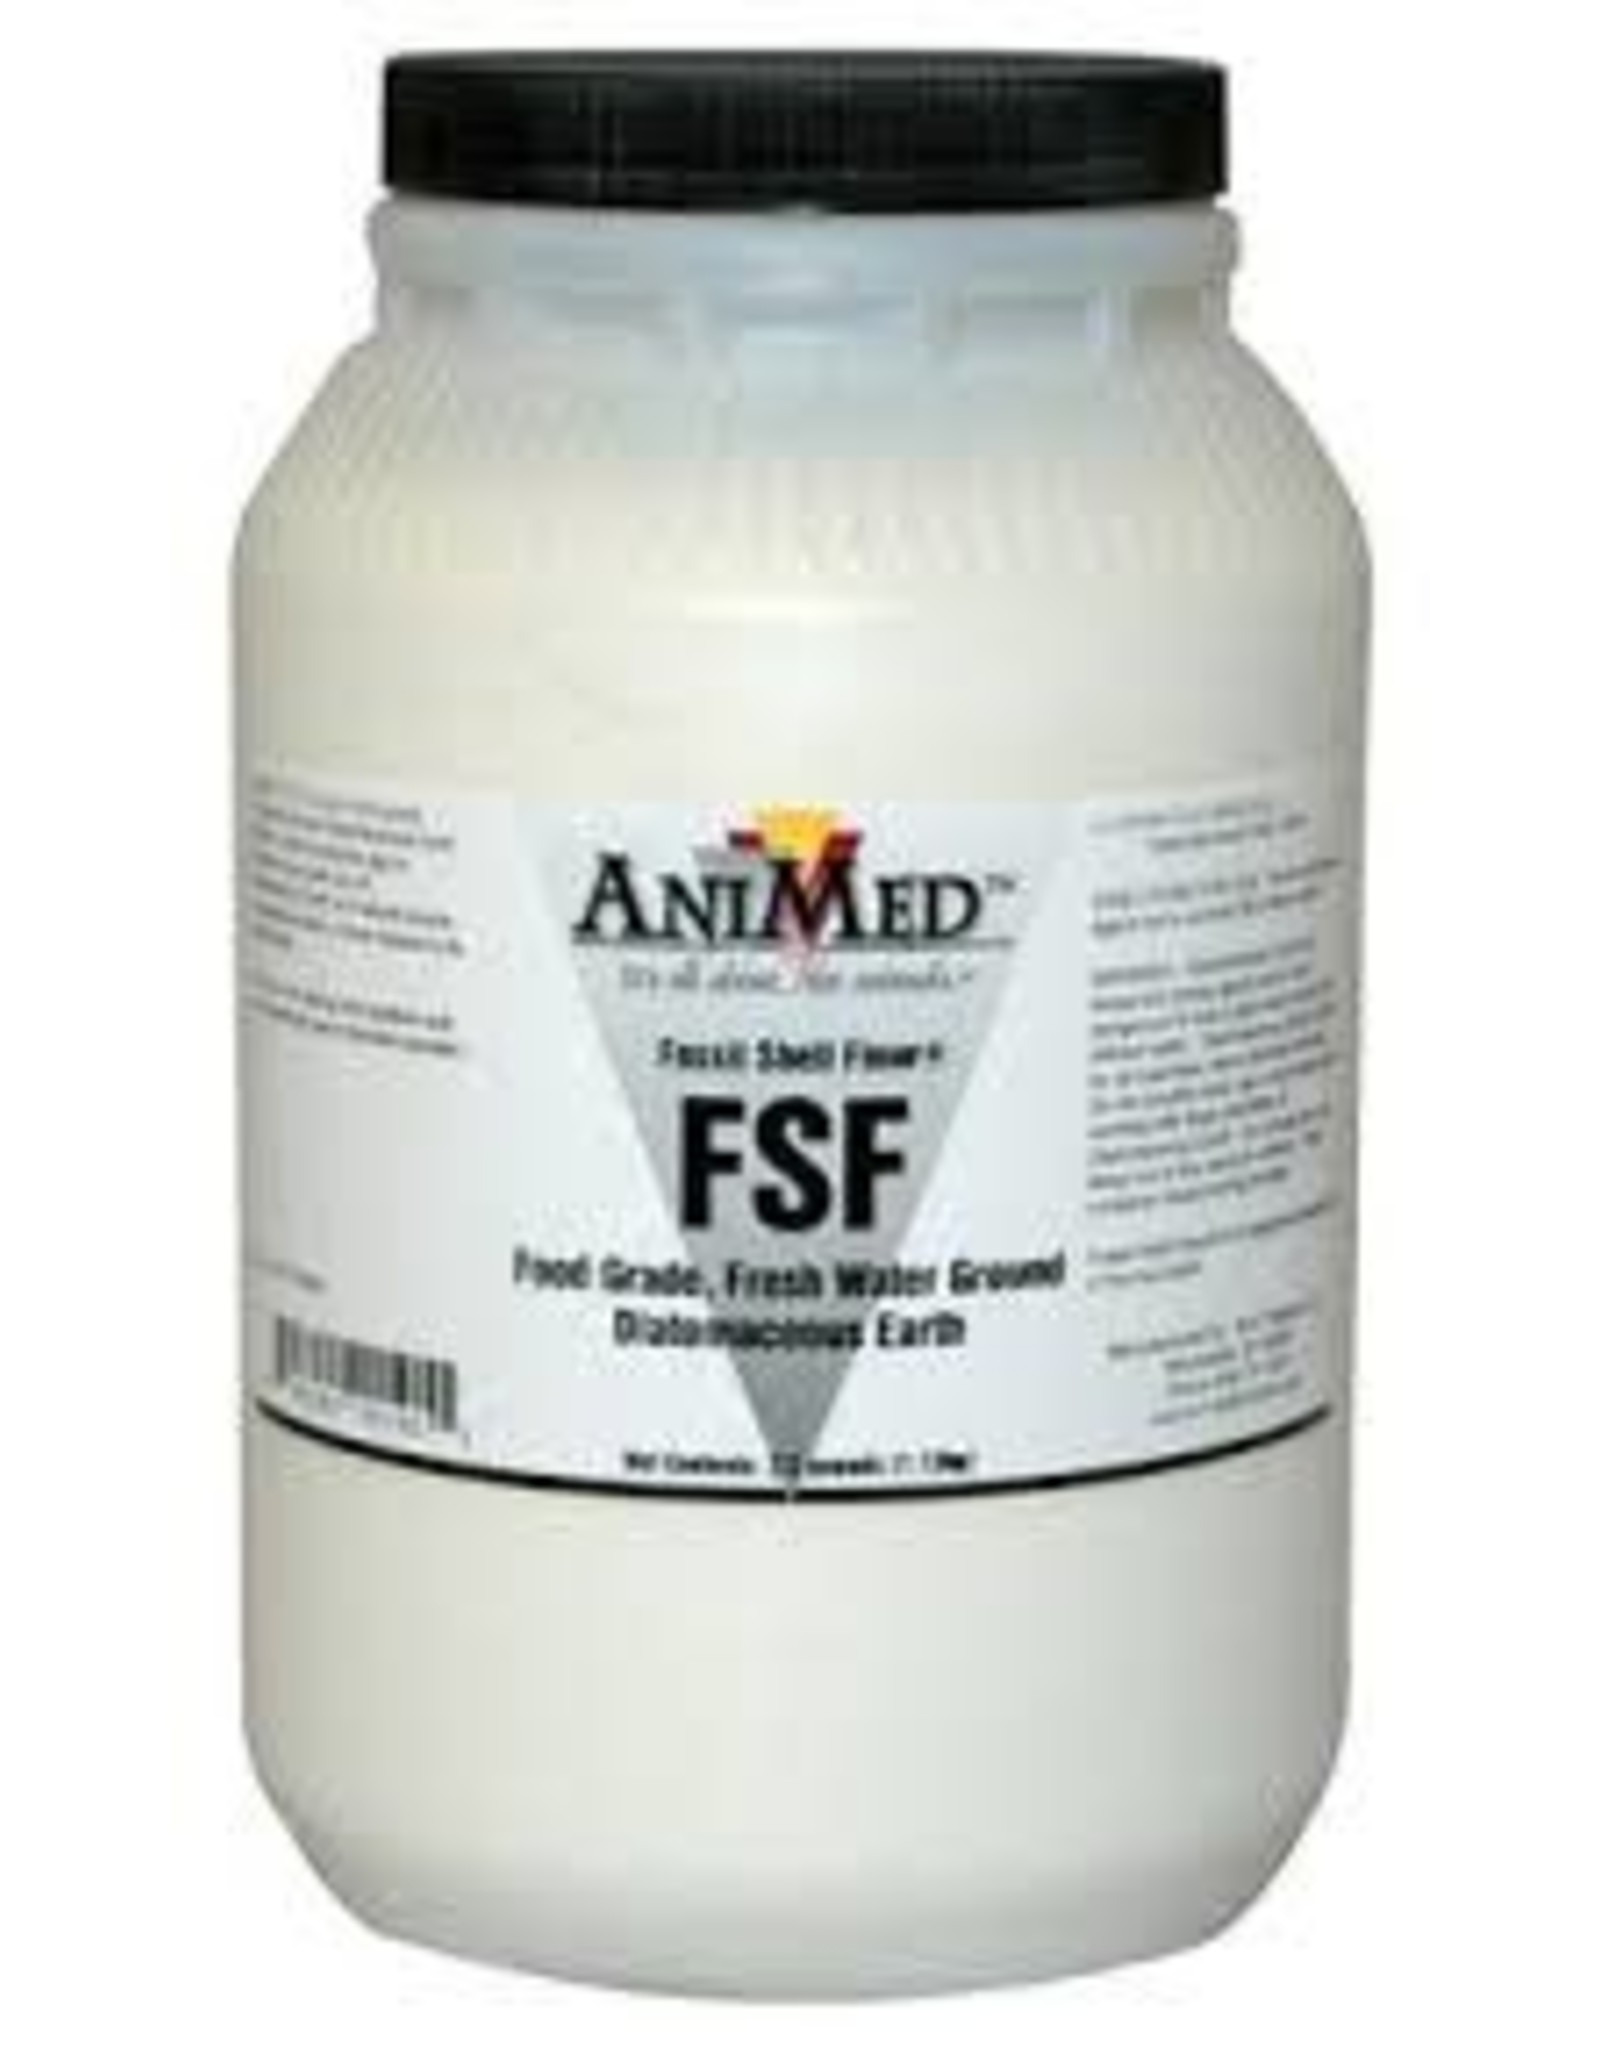 AniMed ANIMED FOOD GRADE DIATOMACEOUS EARTH FOSSIL SHELL FLOUR 2.5LB